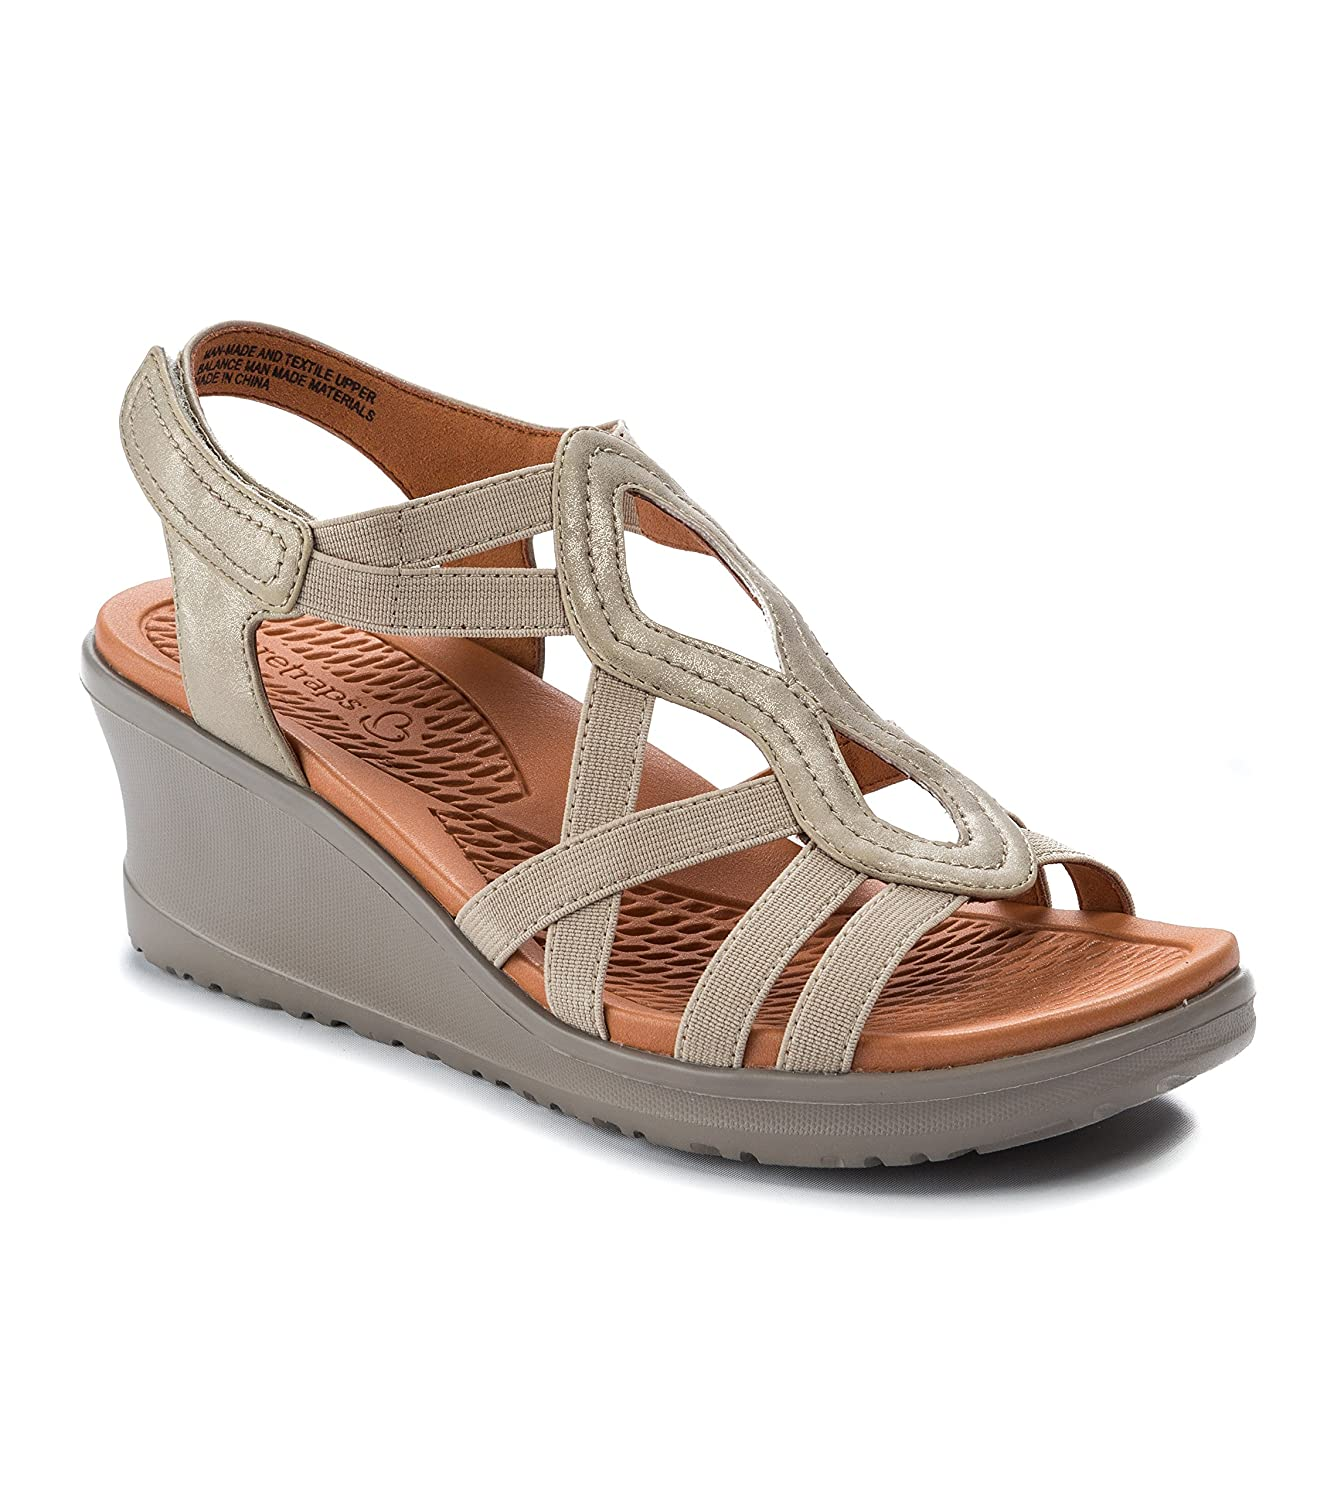 0a21f5e80607 Top 10 wholesale Cork Wedge Sandals - Chinabrands.com